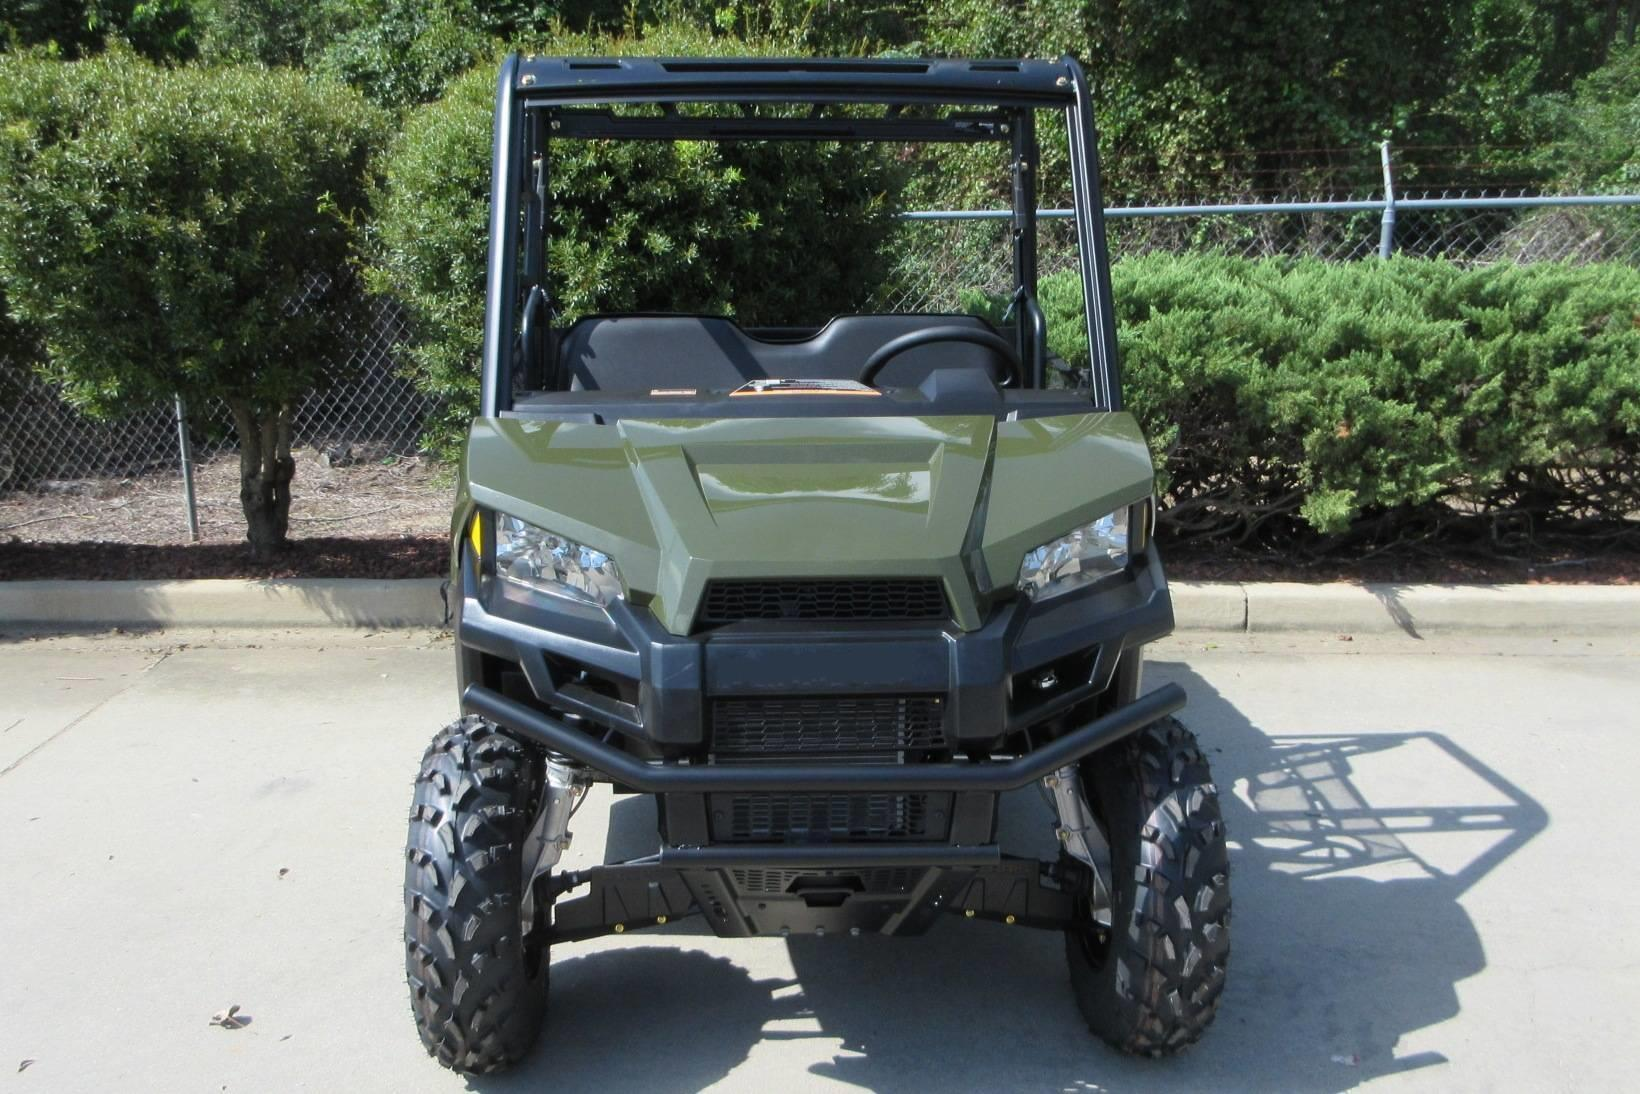 New Original Ranger 500 UTV 4